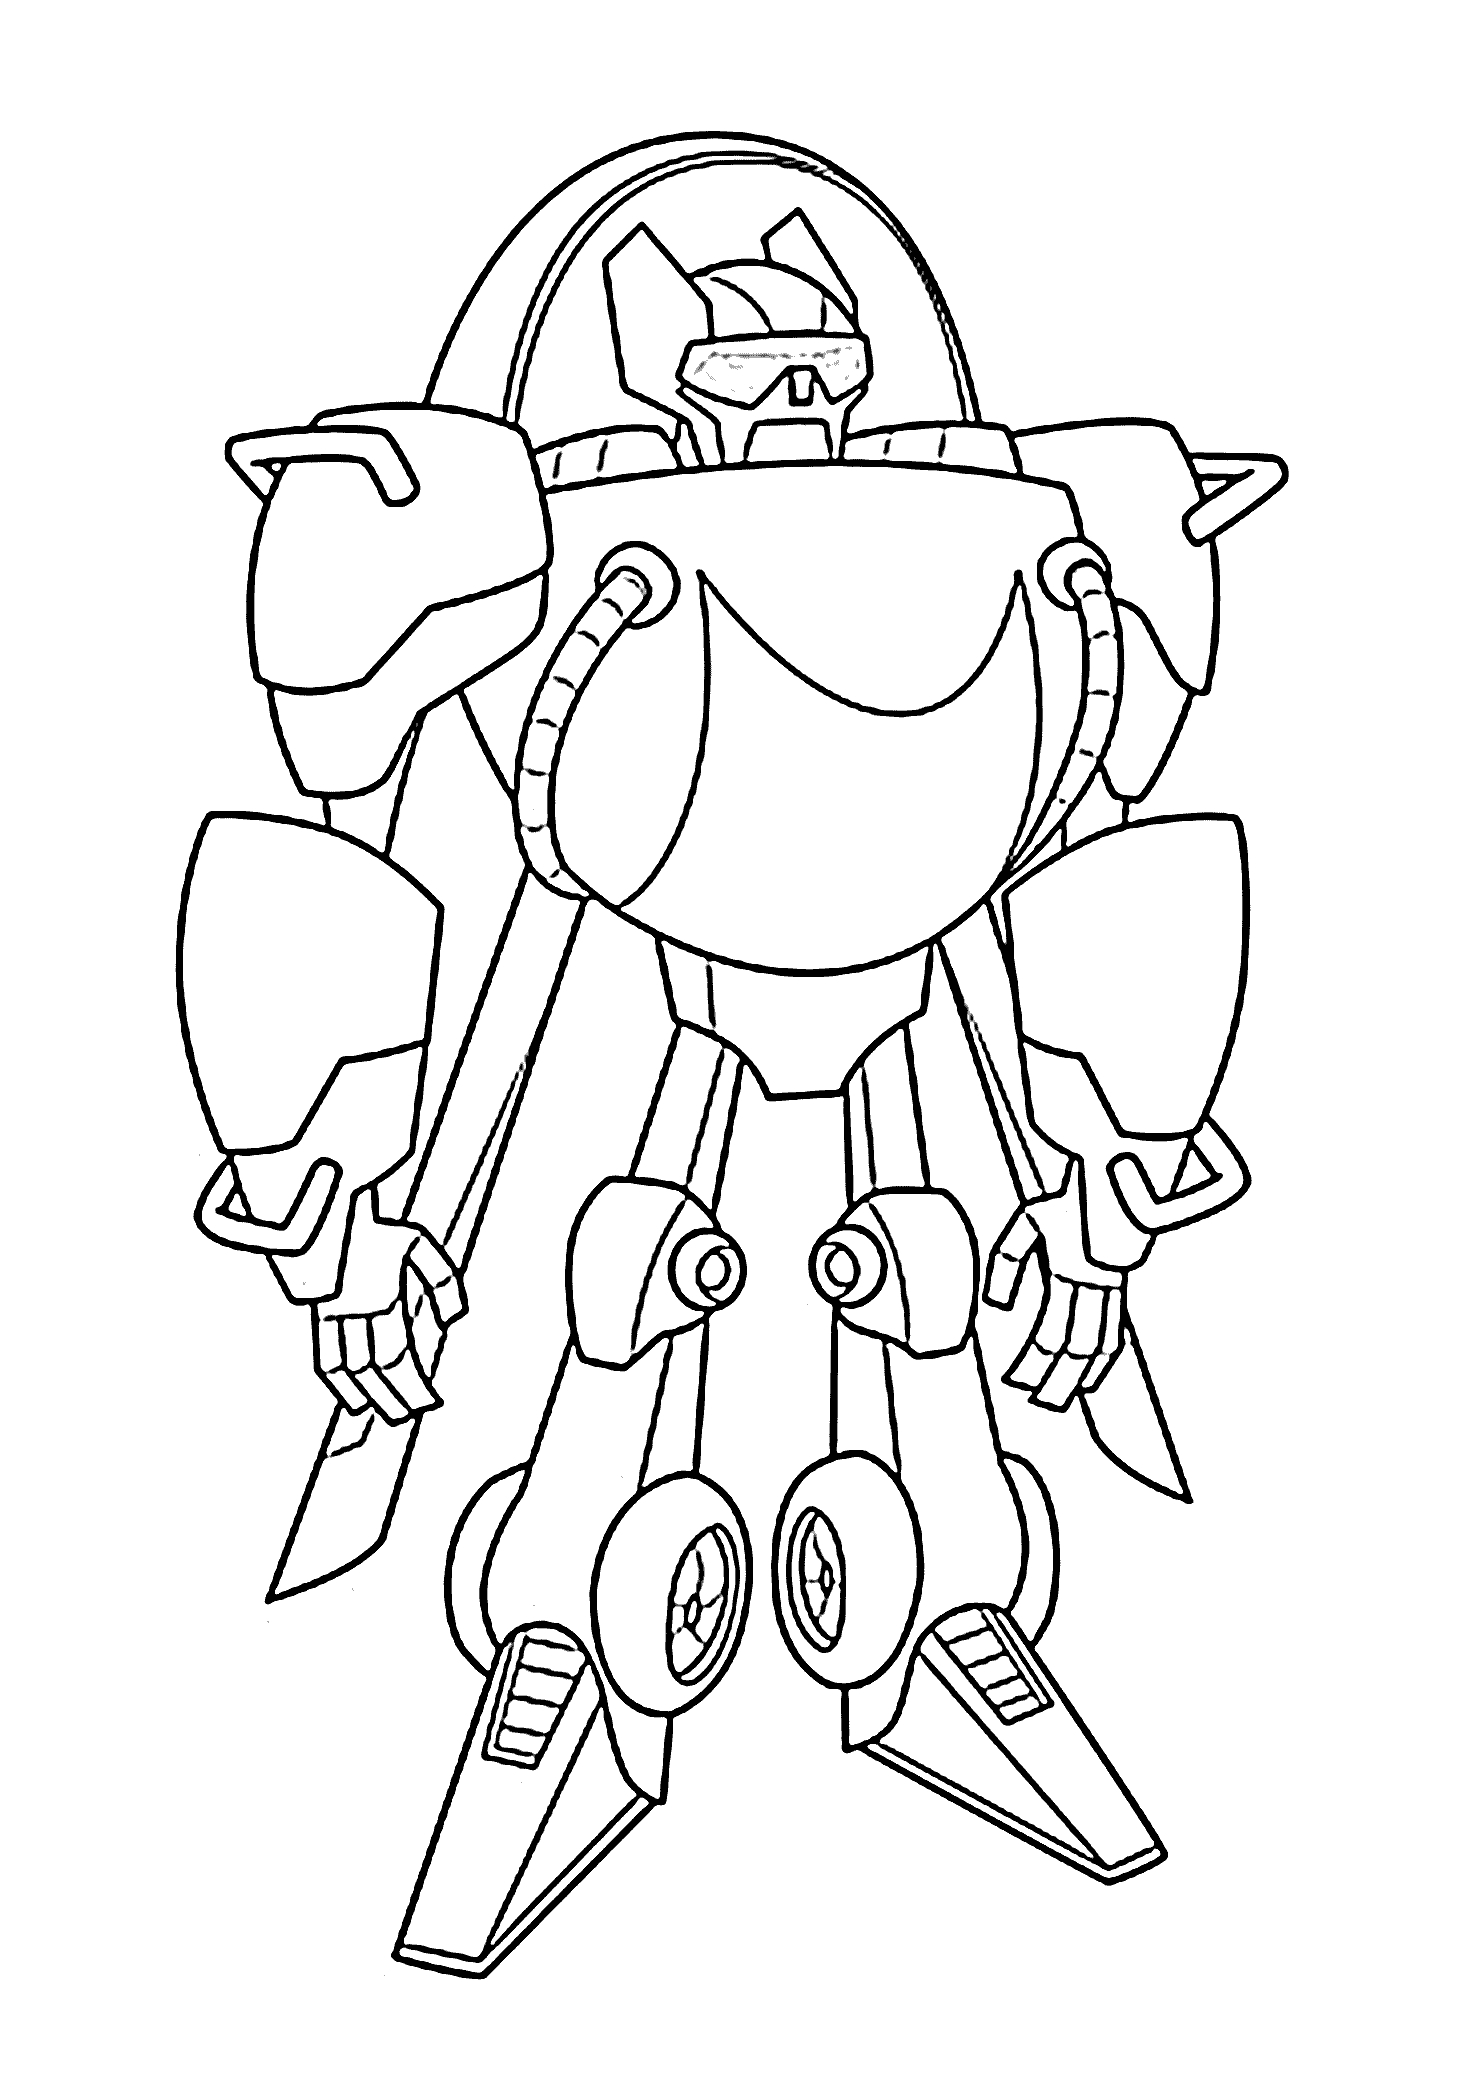 rescue bots coloring pages - coloring pages rescue bots